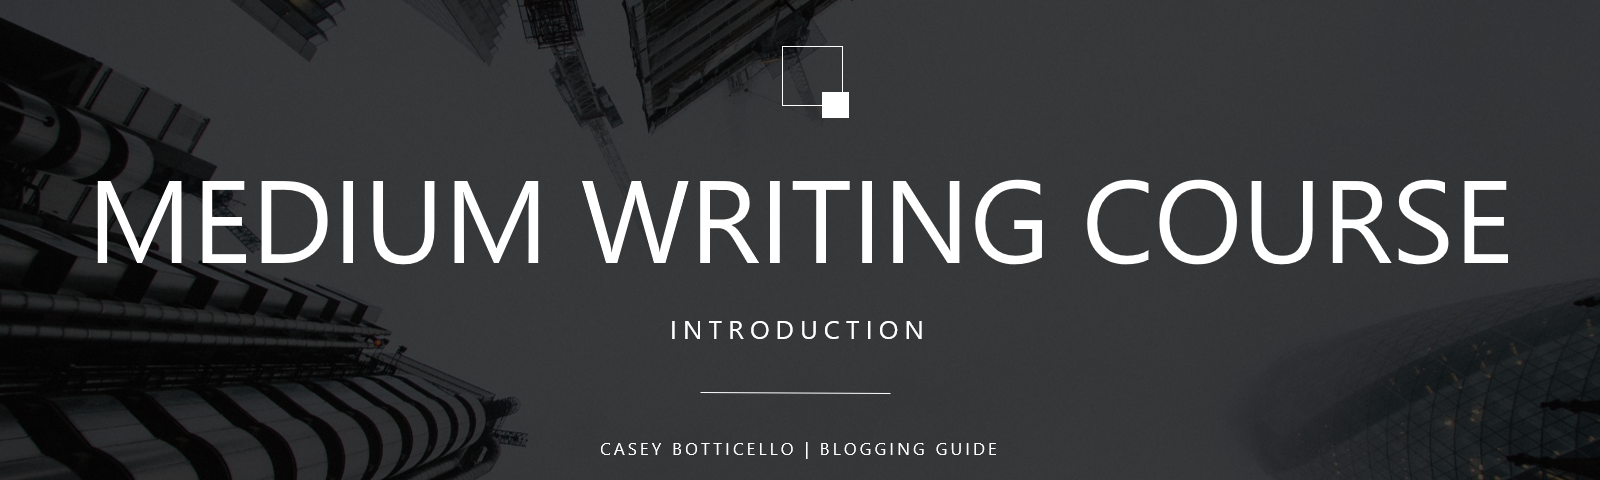 medium mastery, medium writing course, medium writing tips, medium writing introduction, blogging guide medium course